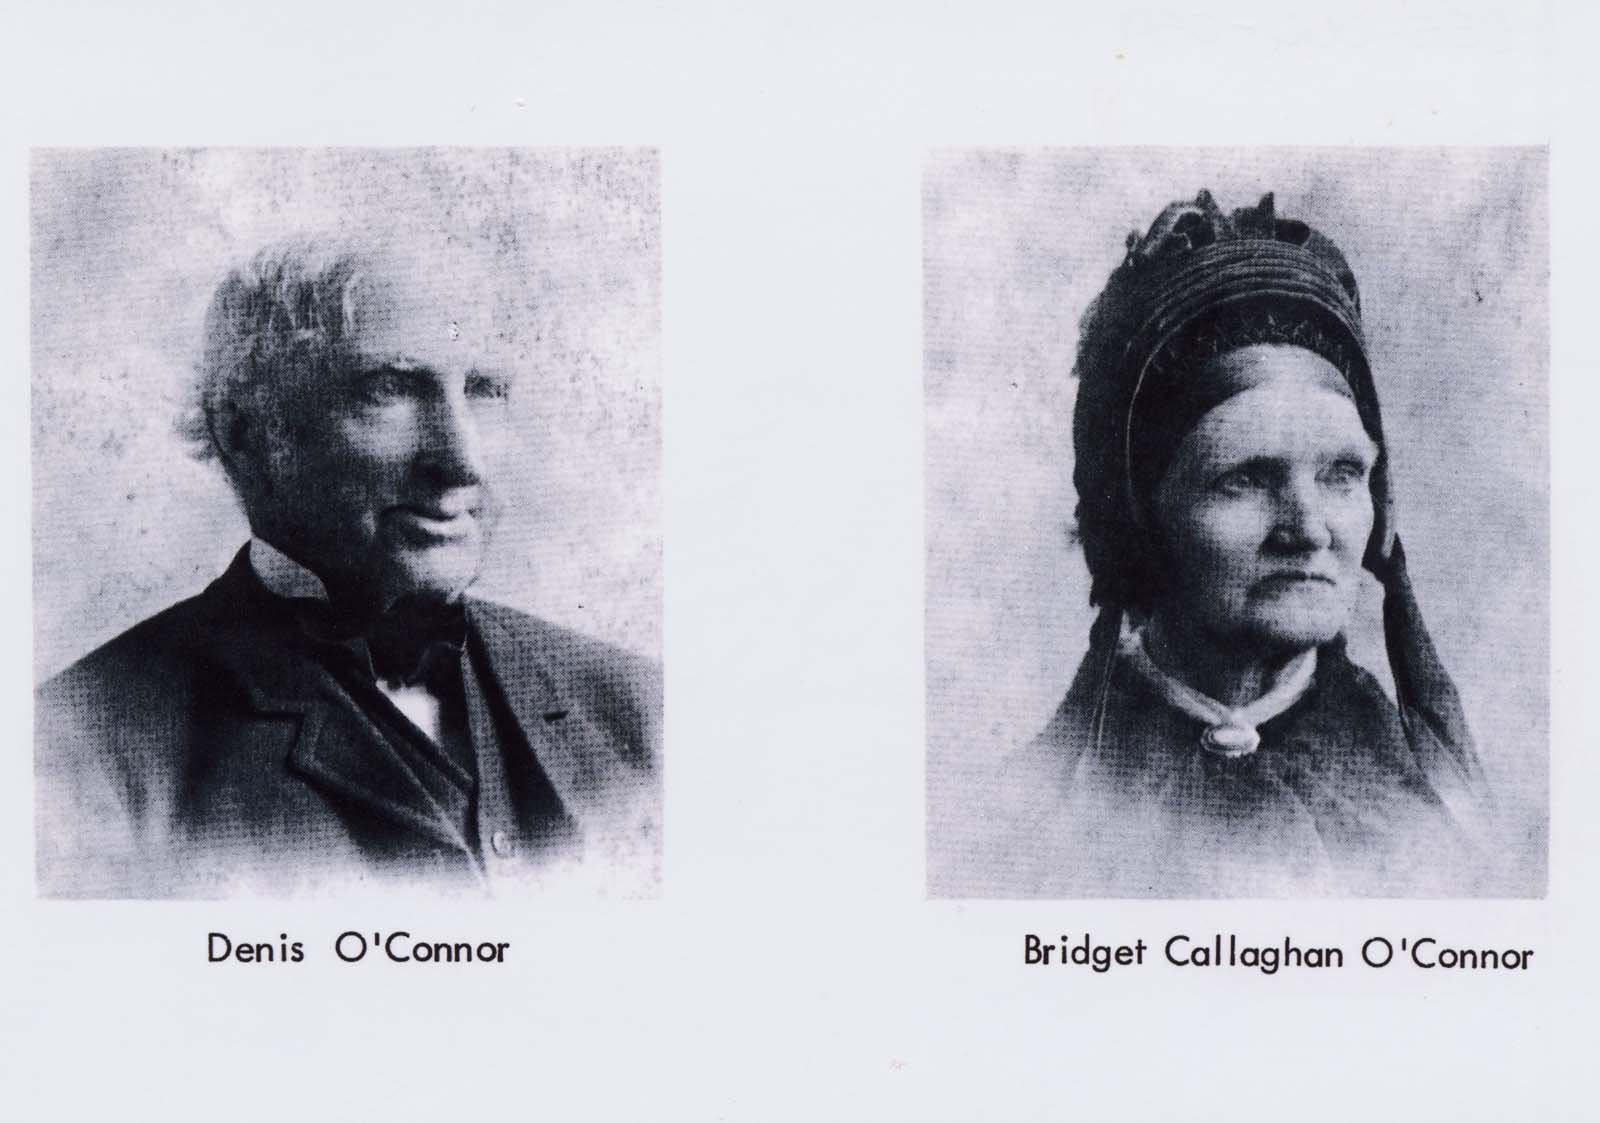 Dennis O'Connor and Bridget Callaghan O'Connor.